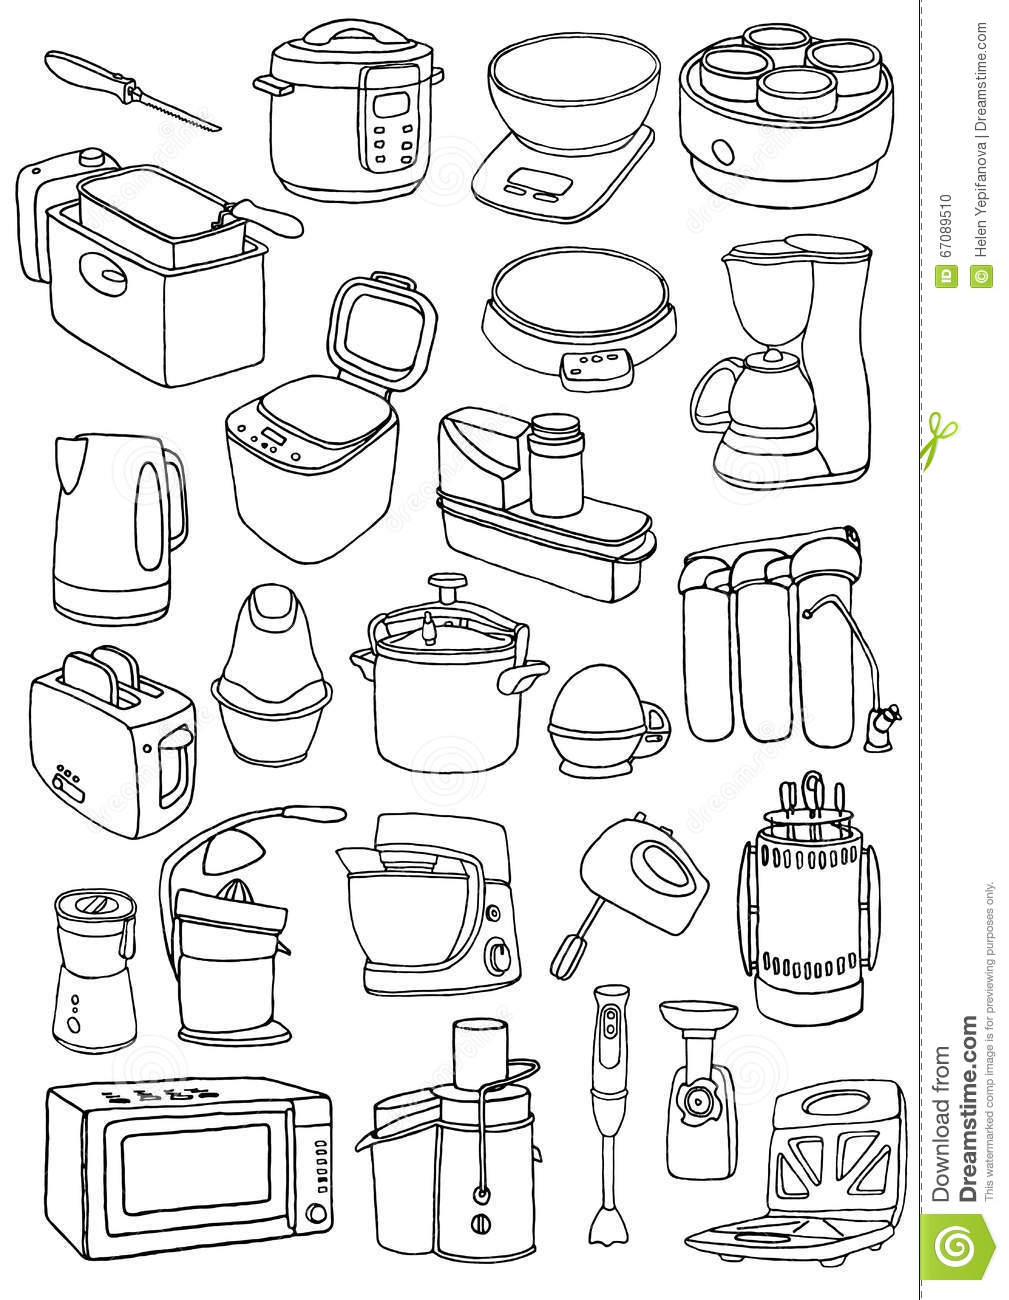 Kitchen appliances set kitchen appliances doodle stock for Kitchen set drawing